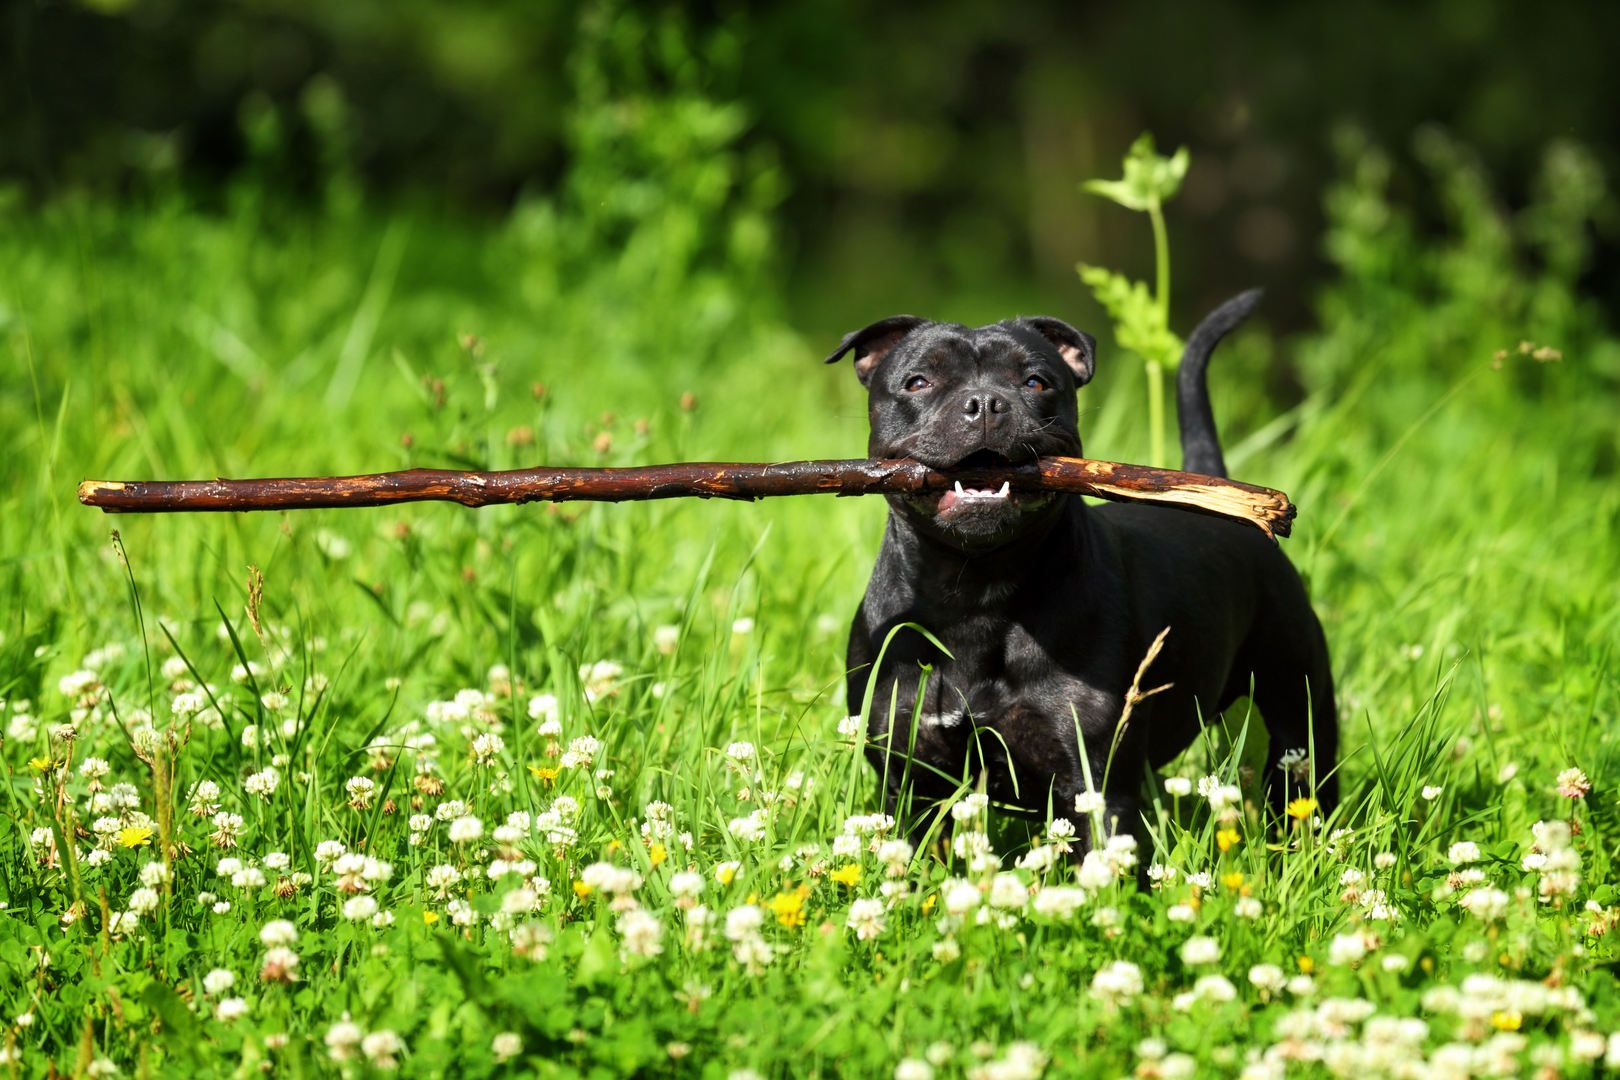 Staffordshire Bull Terrier With A Big Stick Due To Its Breeding And History The Staffordshire Staffordshire Bull Terrier Bull Terrier English Bull Terriers